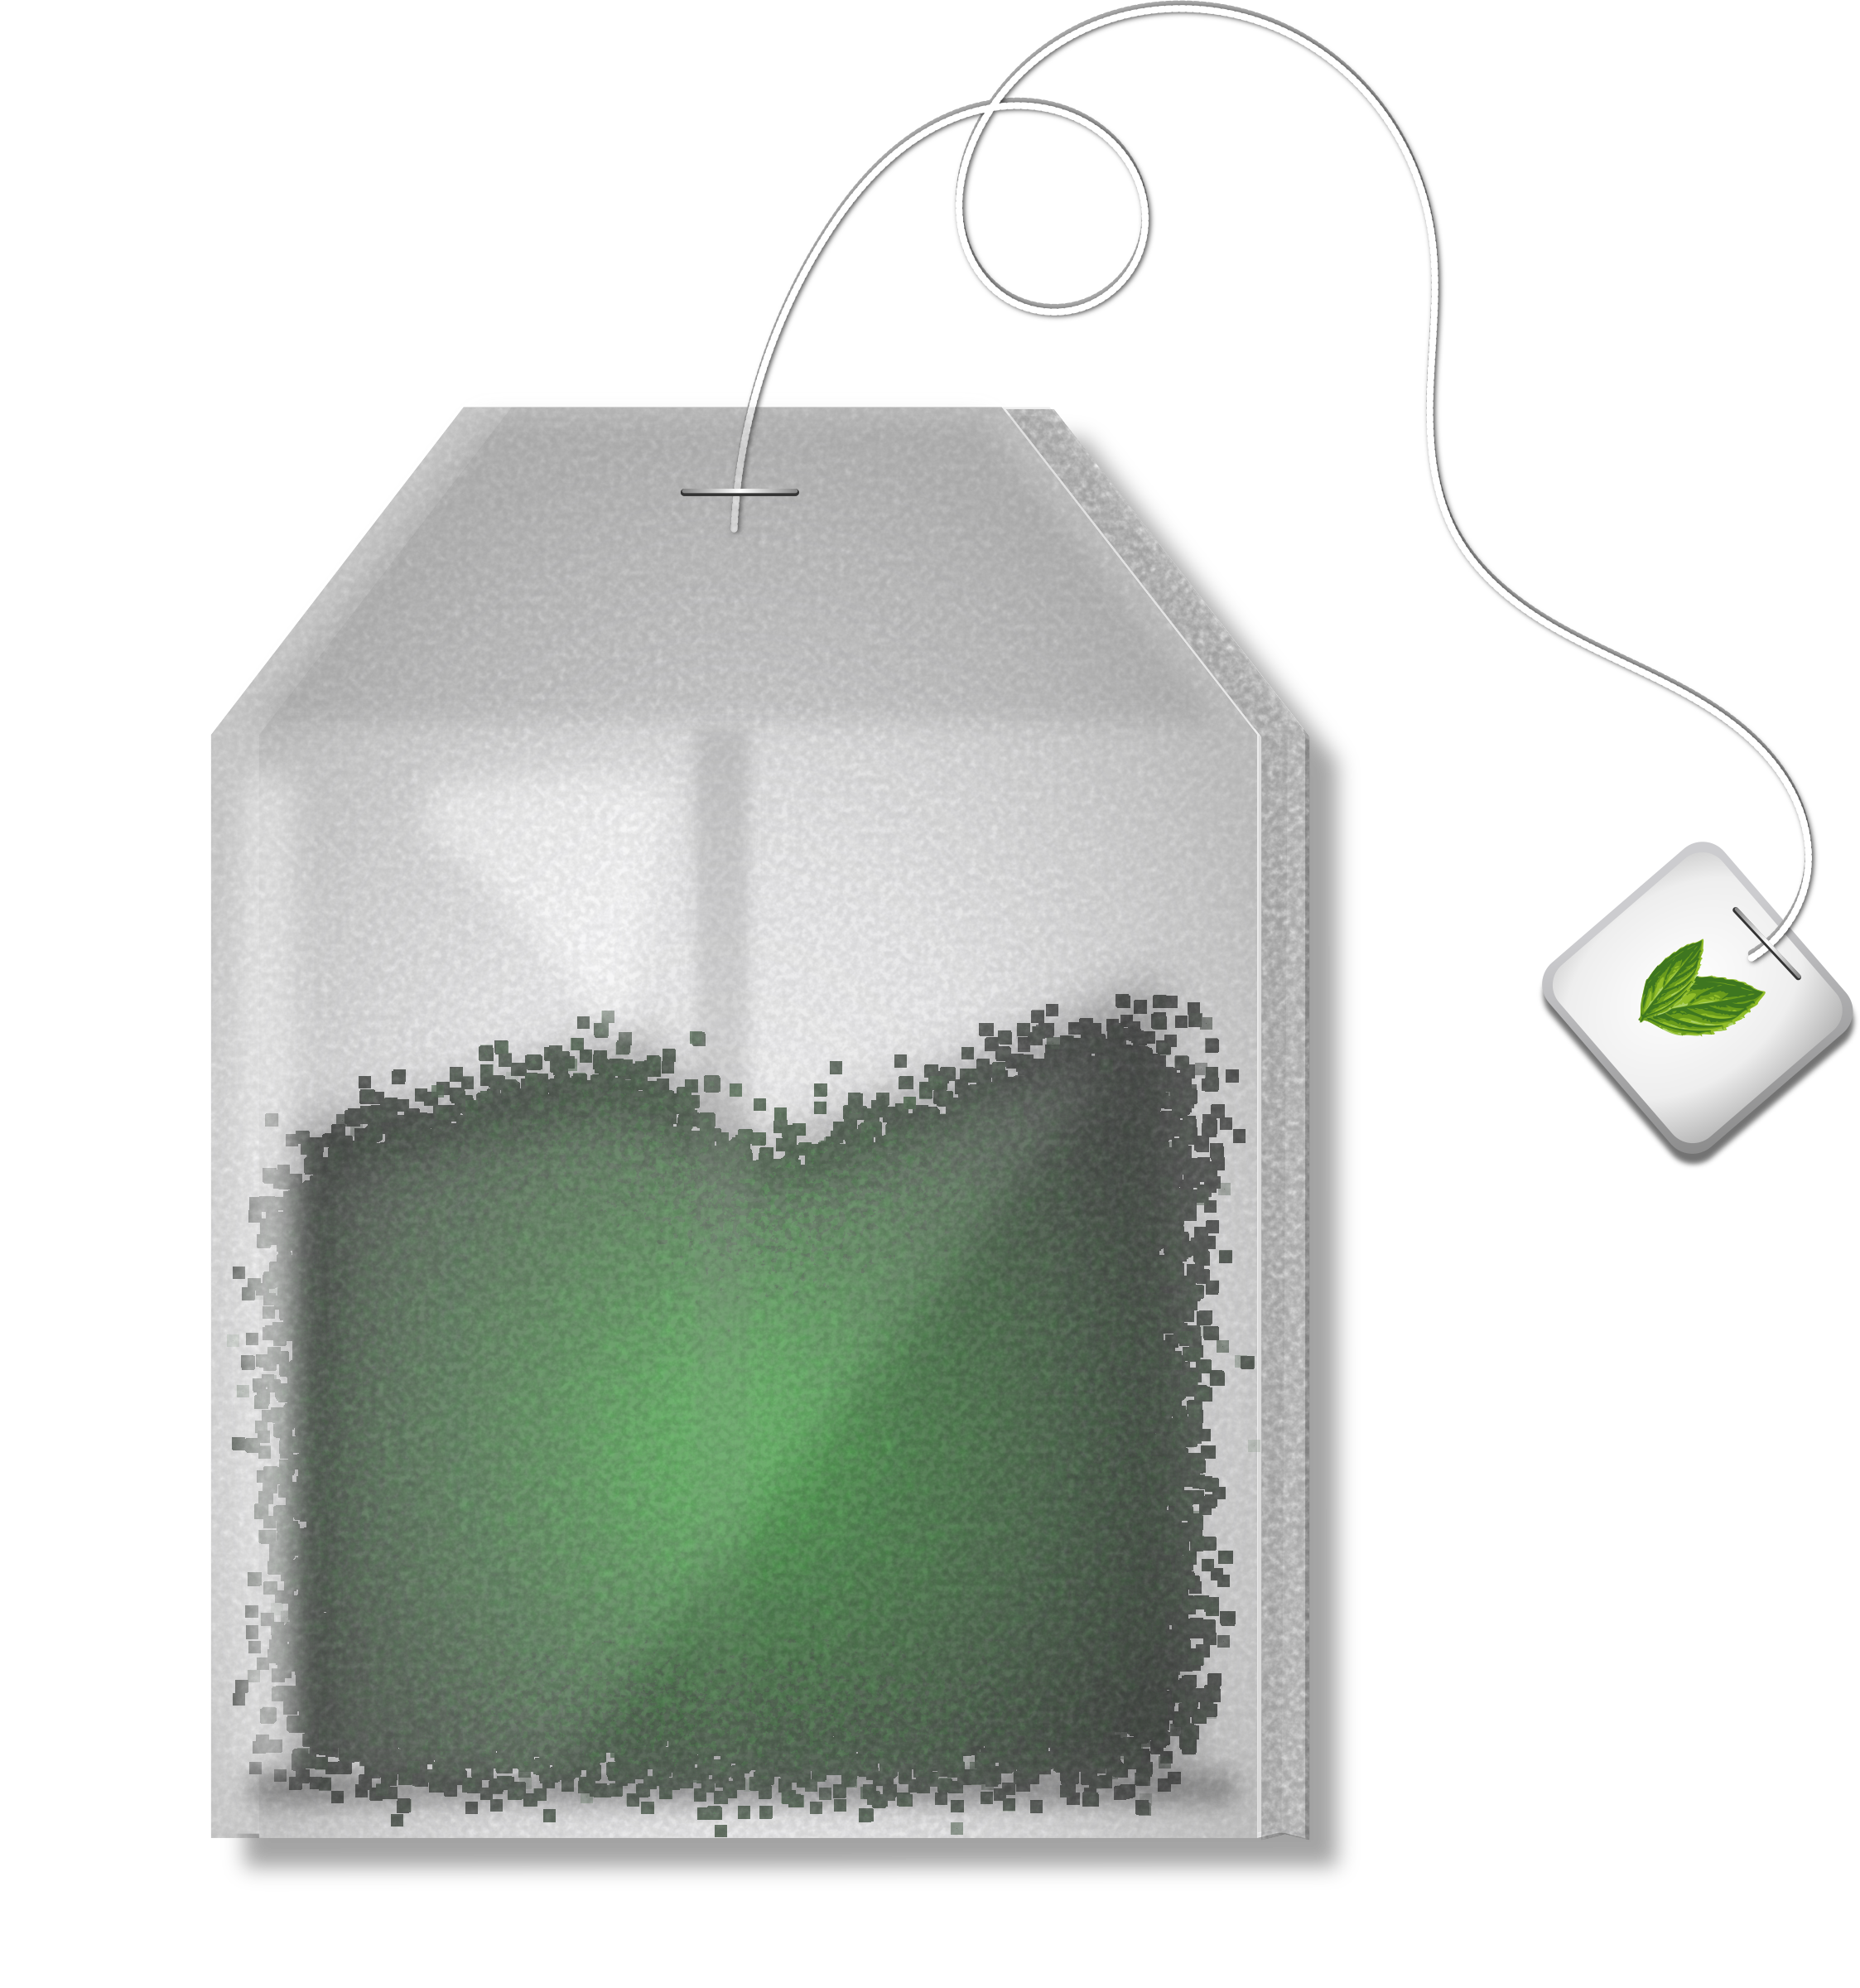 Mint Tea Bag by Merlin2525